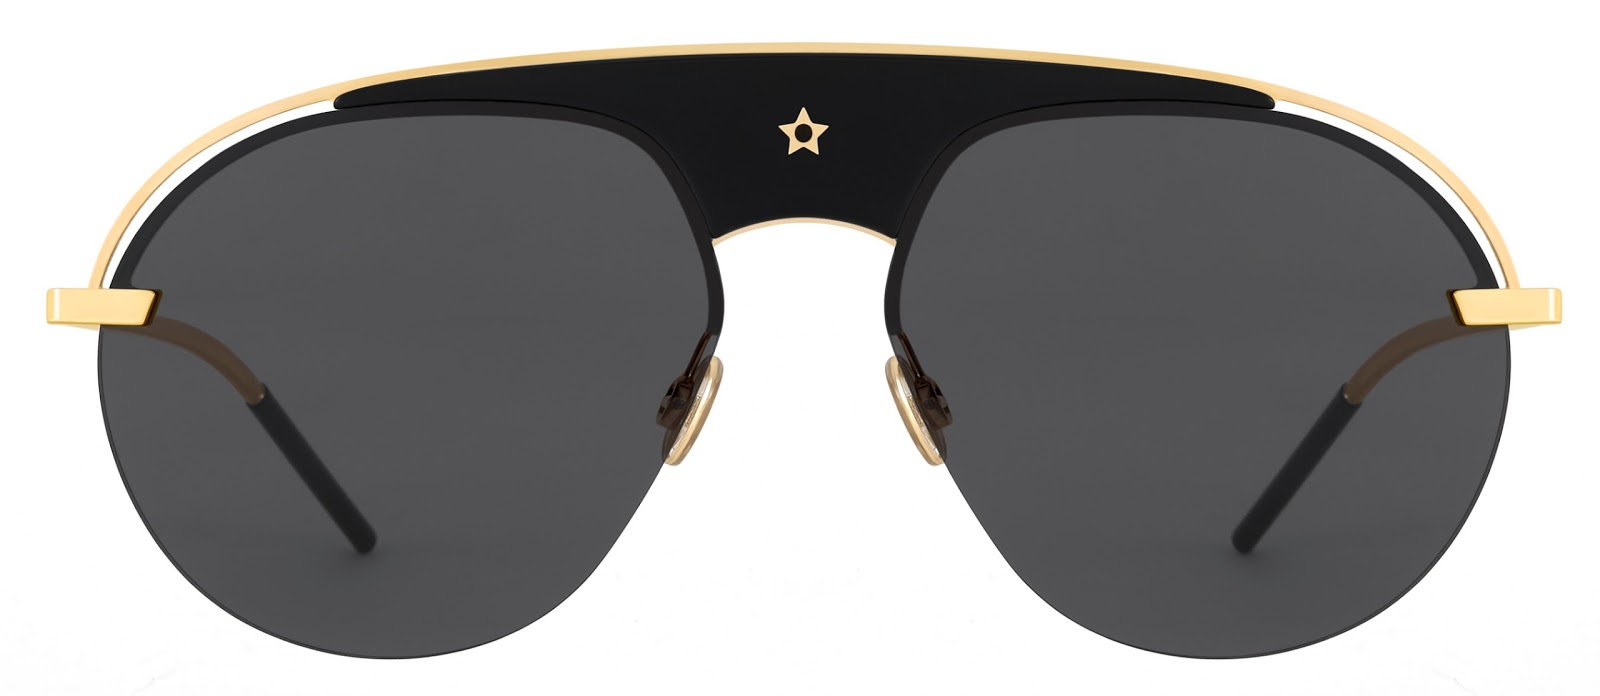 The New Dior(R)evolution Sunnies